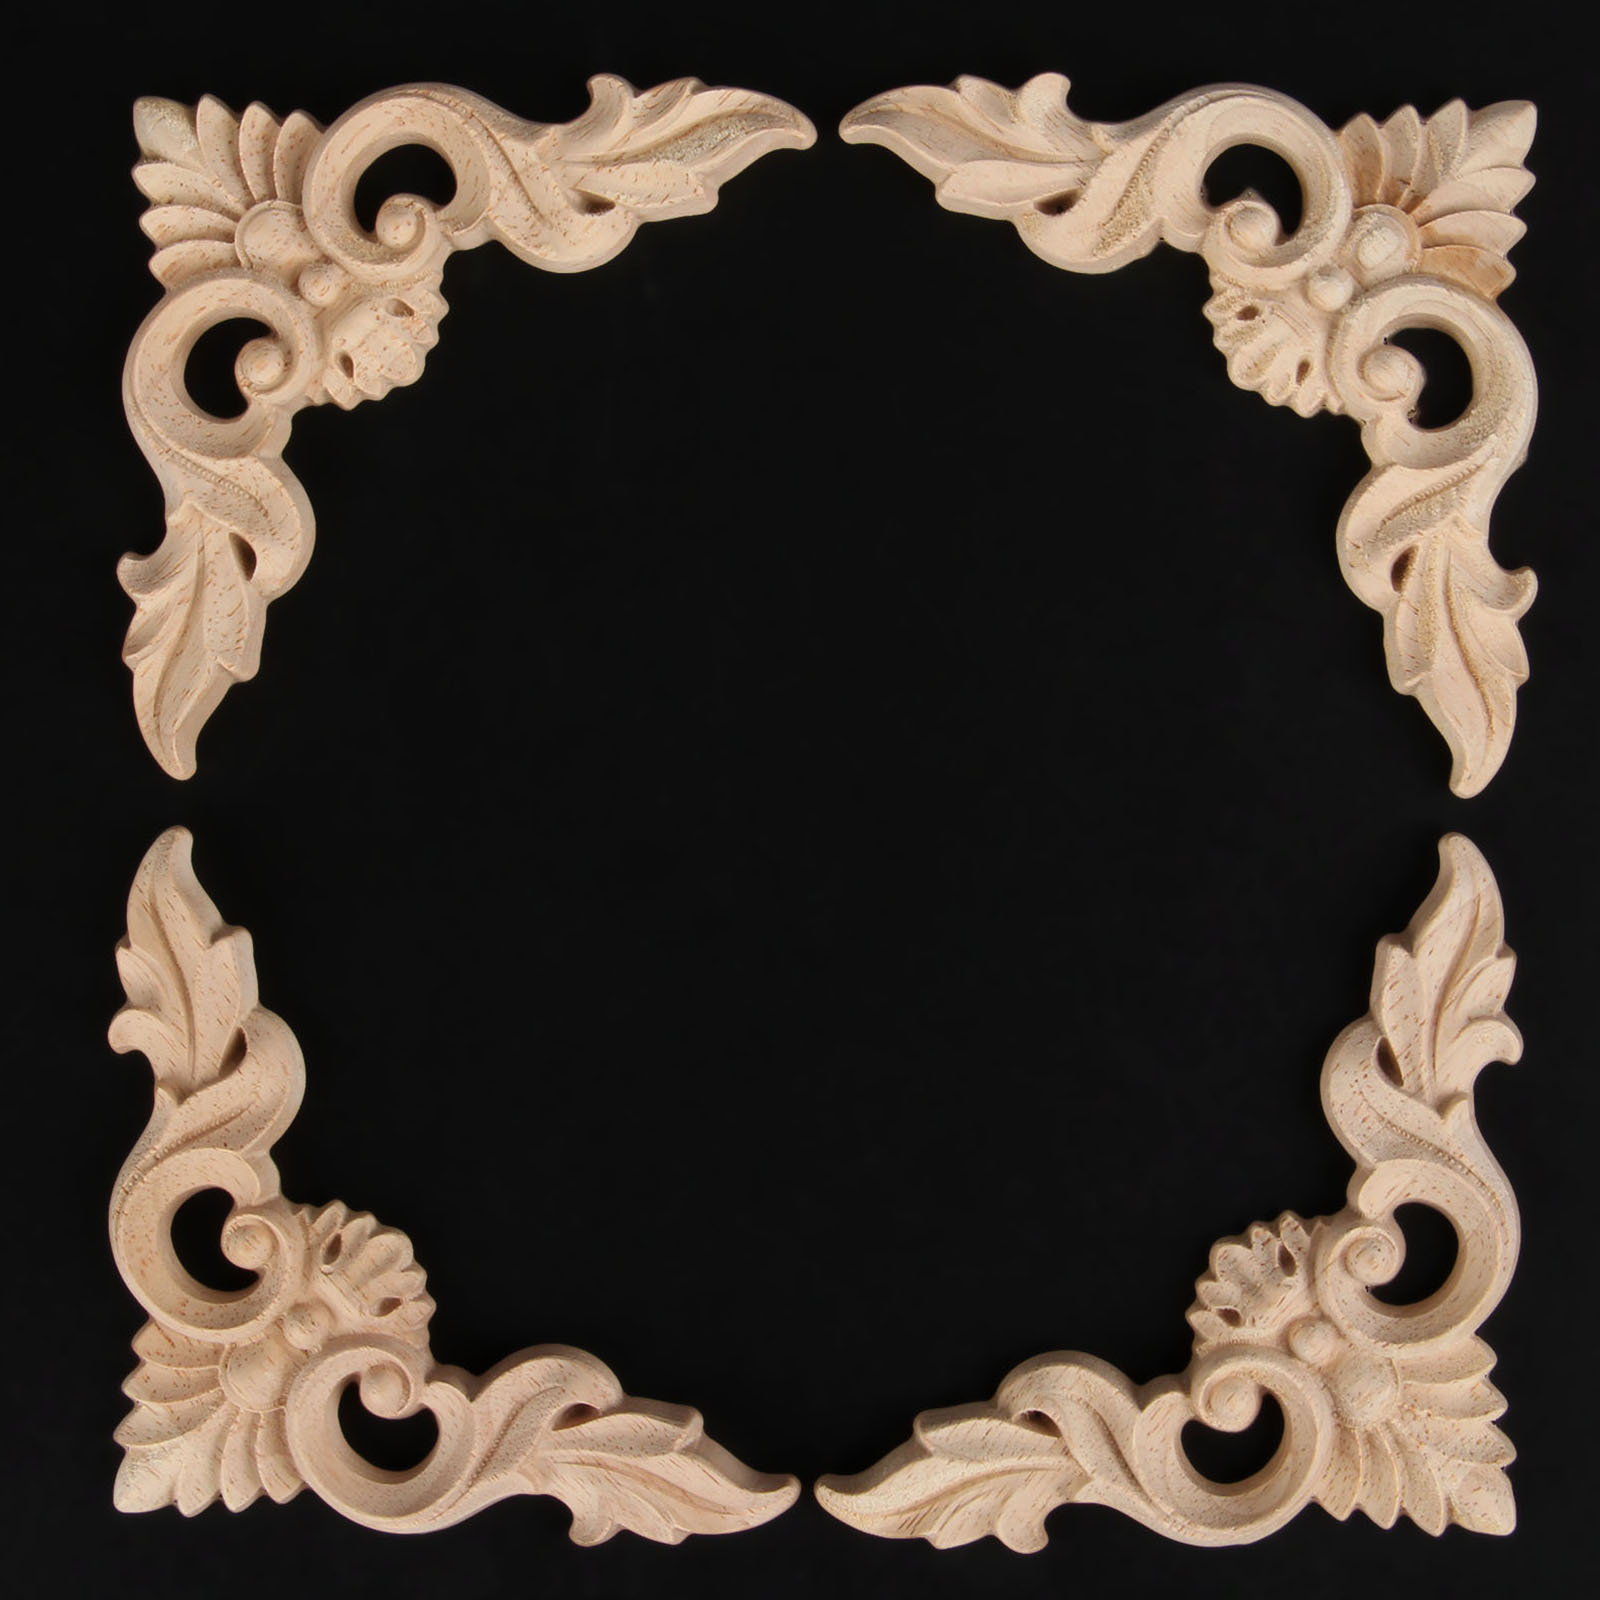 Pc woodcarving decal corner wood carved wall door